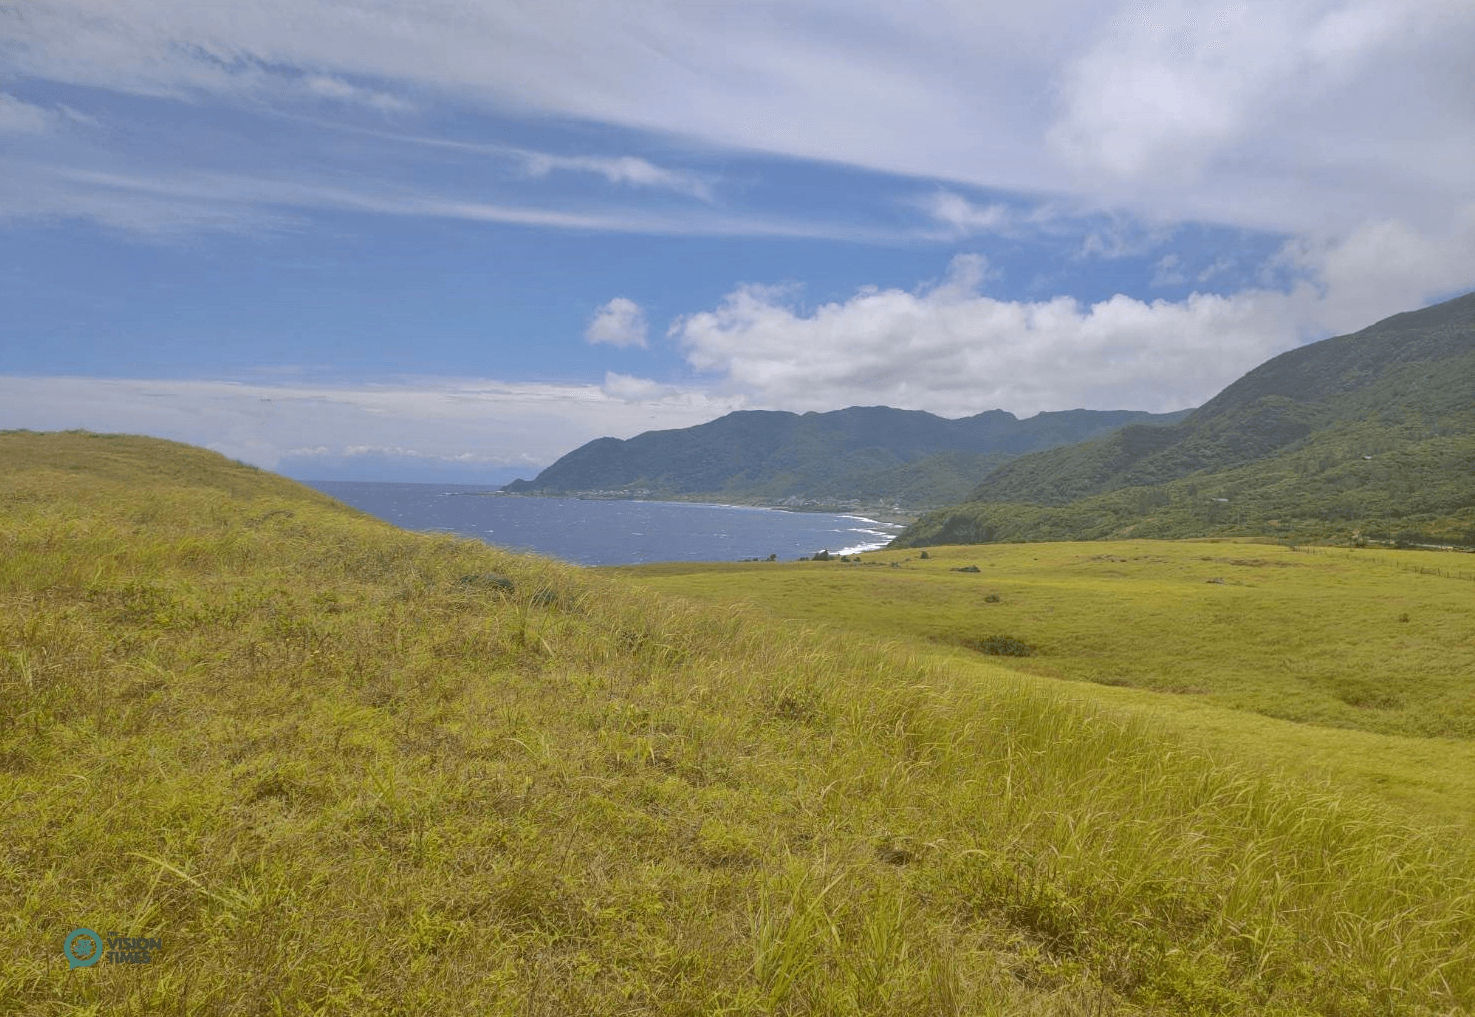 The Green Green Grassland (青青草原) in Orchid Island. (Image: Billy Shyu / Vision Times)